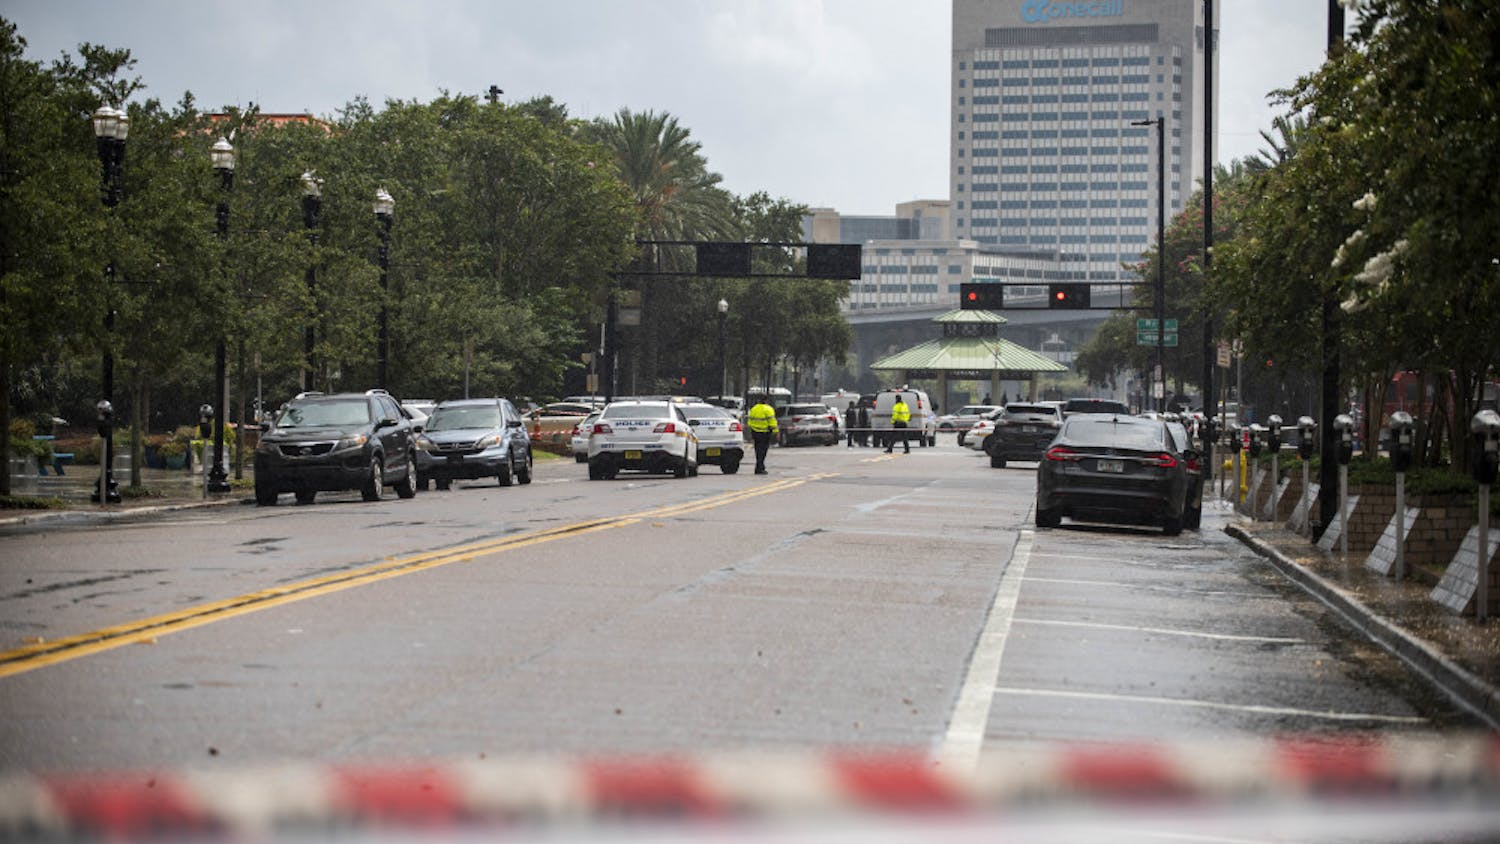 Police barricade a street near the Jacksonville Landing in Jacksonville, Fla., Sunday, Aug. 26, 2018. Florida authorities are reporting multiple fatalities after a mass shooting at the riverfront mall in Jacksonville that was hosting a video game tournament. (AP Photo/Laura Heald)